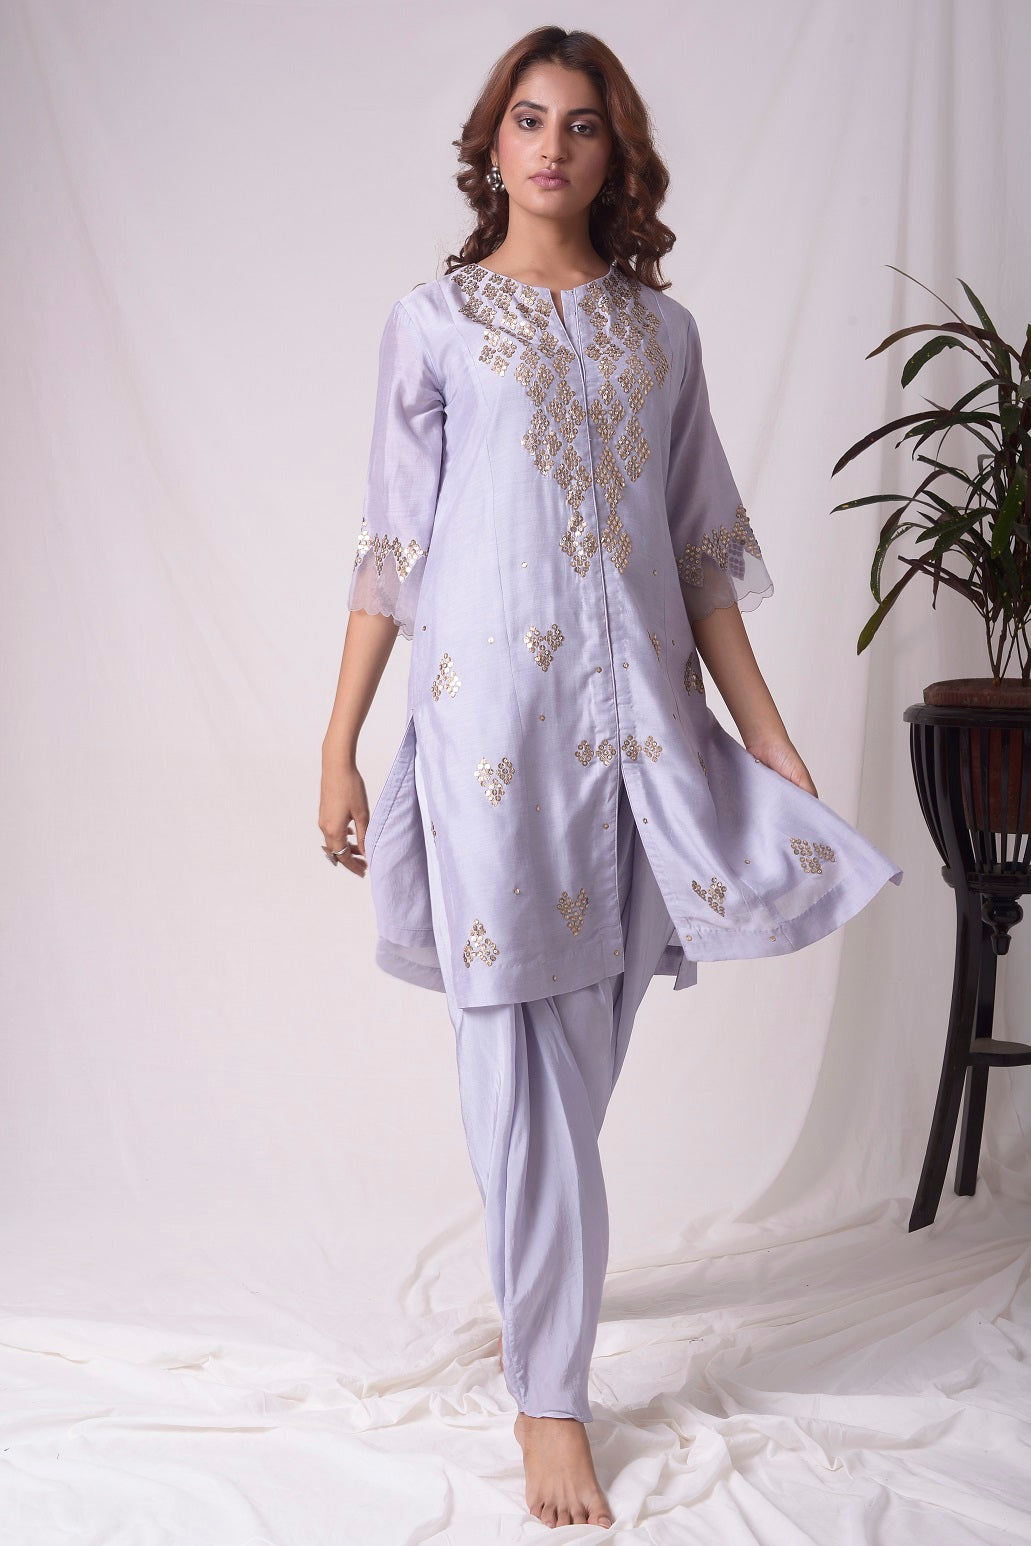 Buy lavender embroidered chanderi suit online in USA. Suit has simple golden work. Kurta has 3/4 length sleeves with net like at border, dhoti and rhombus neckline. Simple look makes it elegant. Be the talk of parties and weddings with exquisite designer gowns from Pure Elegance Indian clothing store in USA. Shop online now.-full view-2